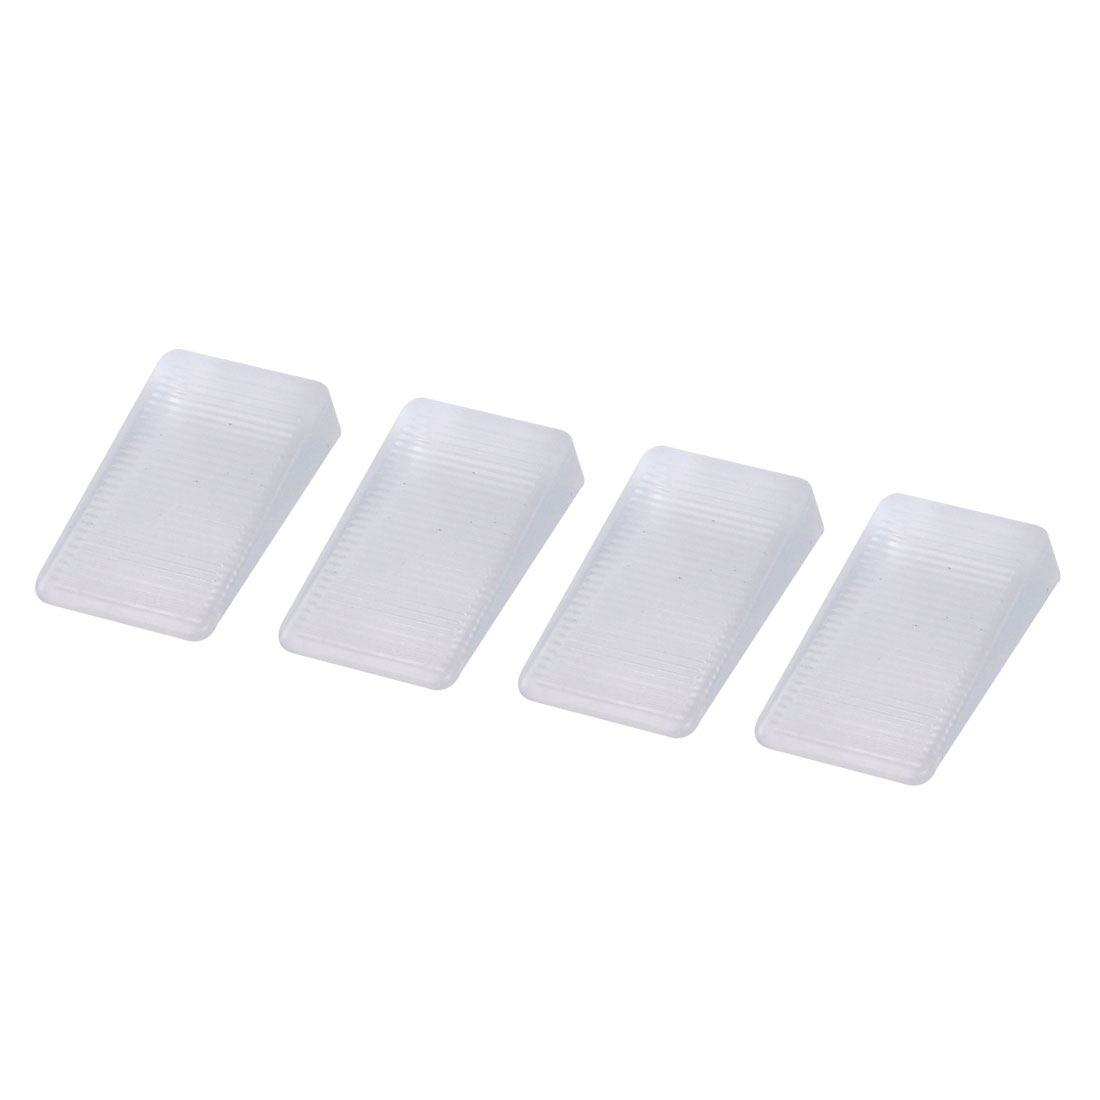 Floor Guard Rubber Cabinet Cupboard Door Tabletop Protector Pads 4pcs